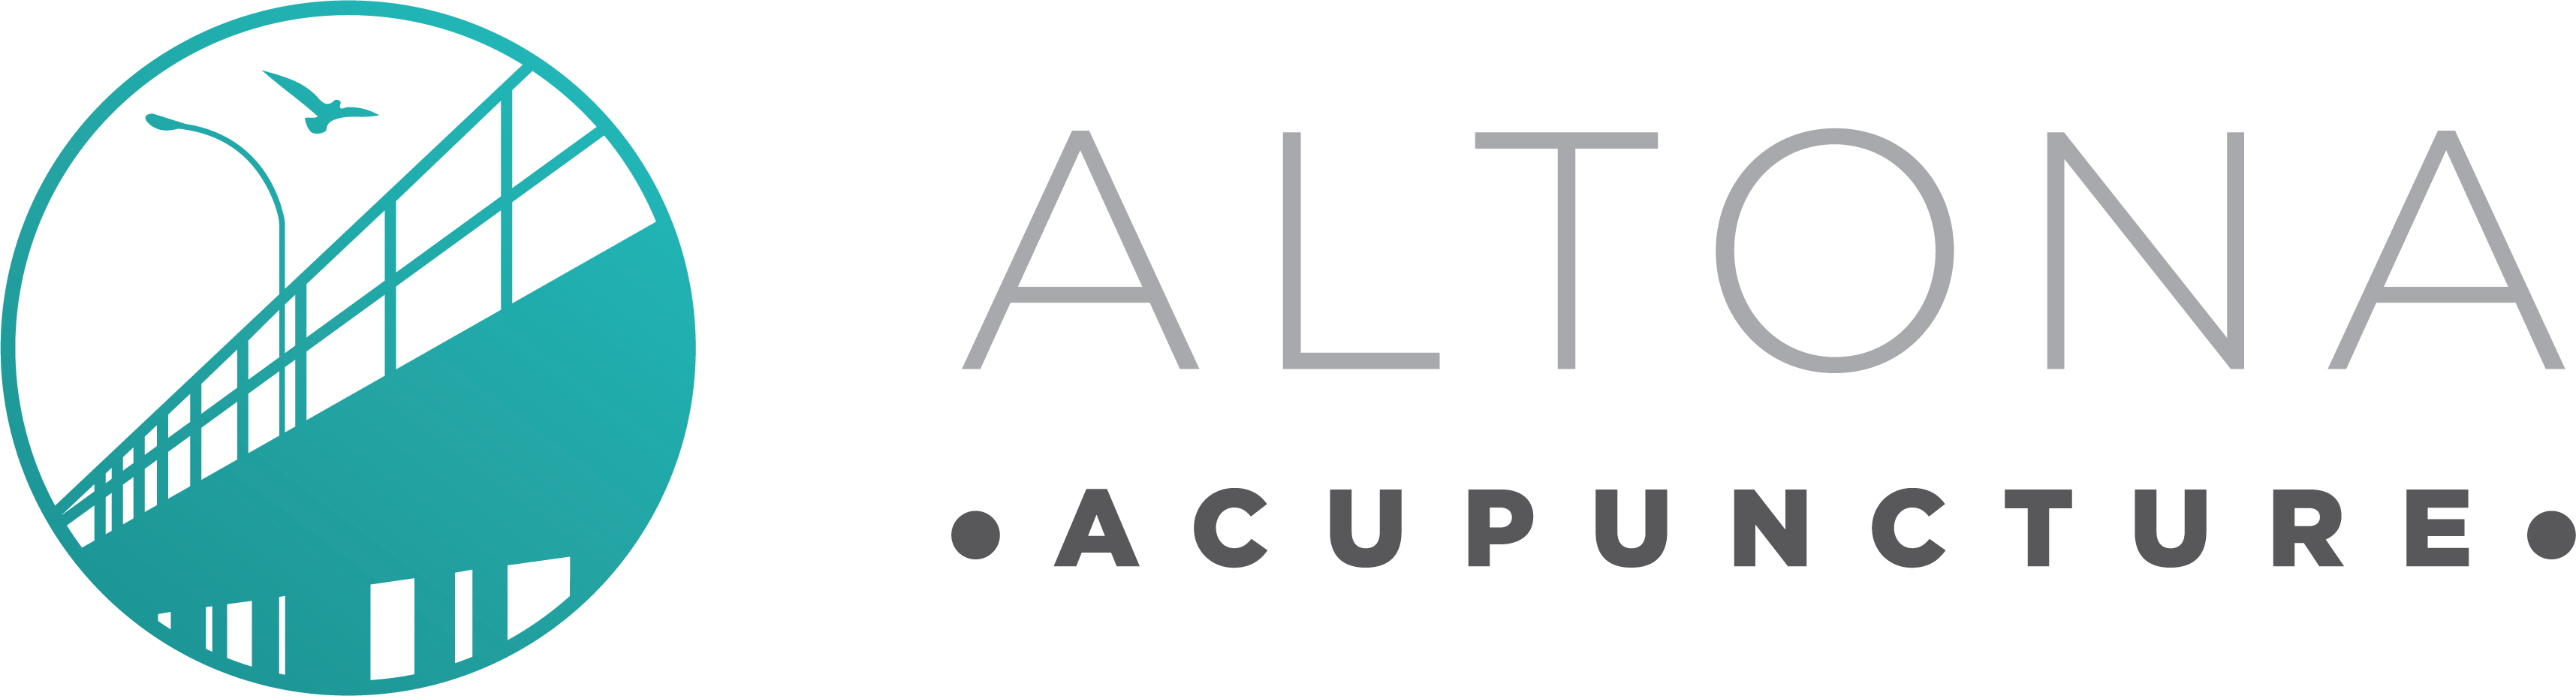 Altona Acupuncture